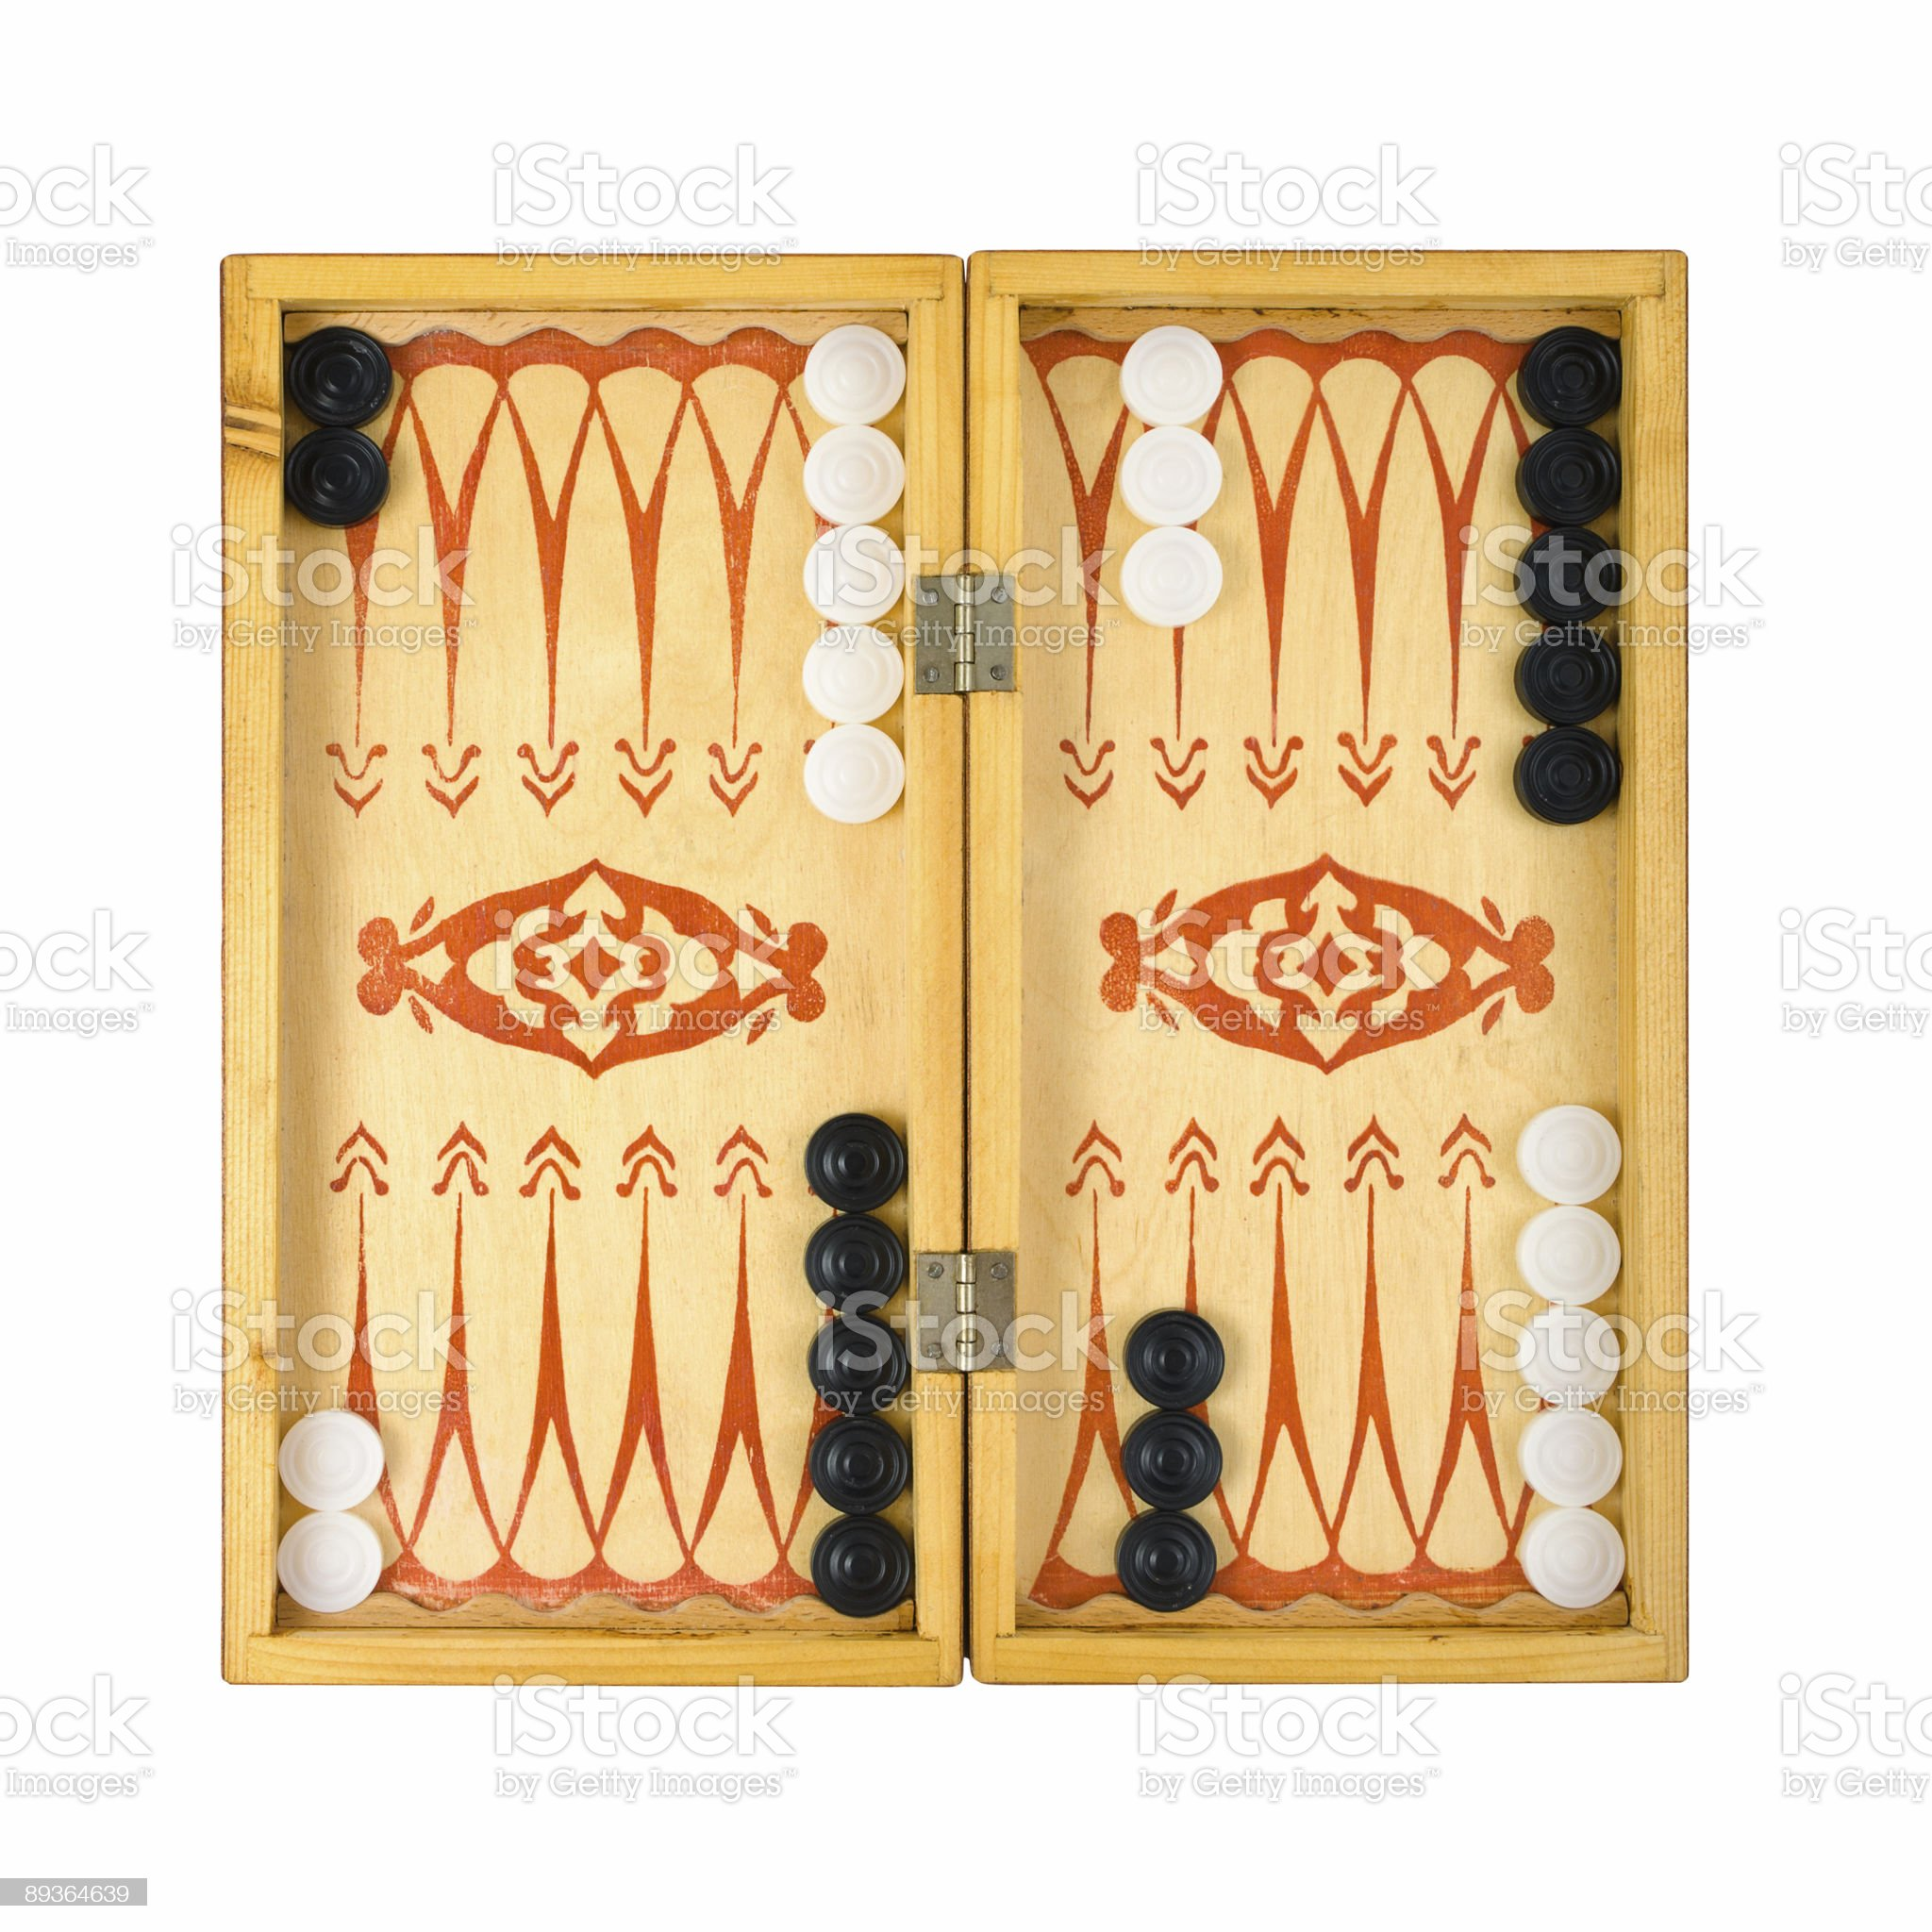 Retro backgammon game royalty-free stock photo